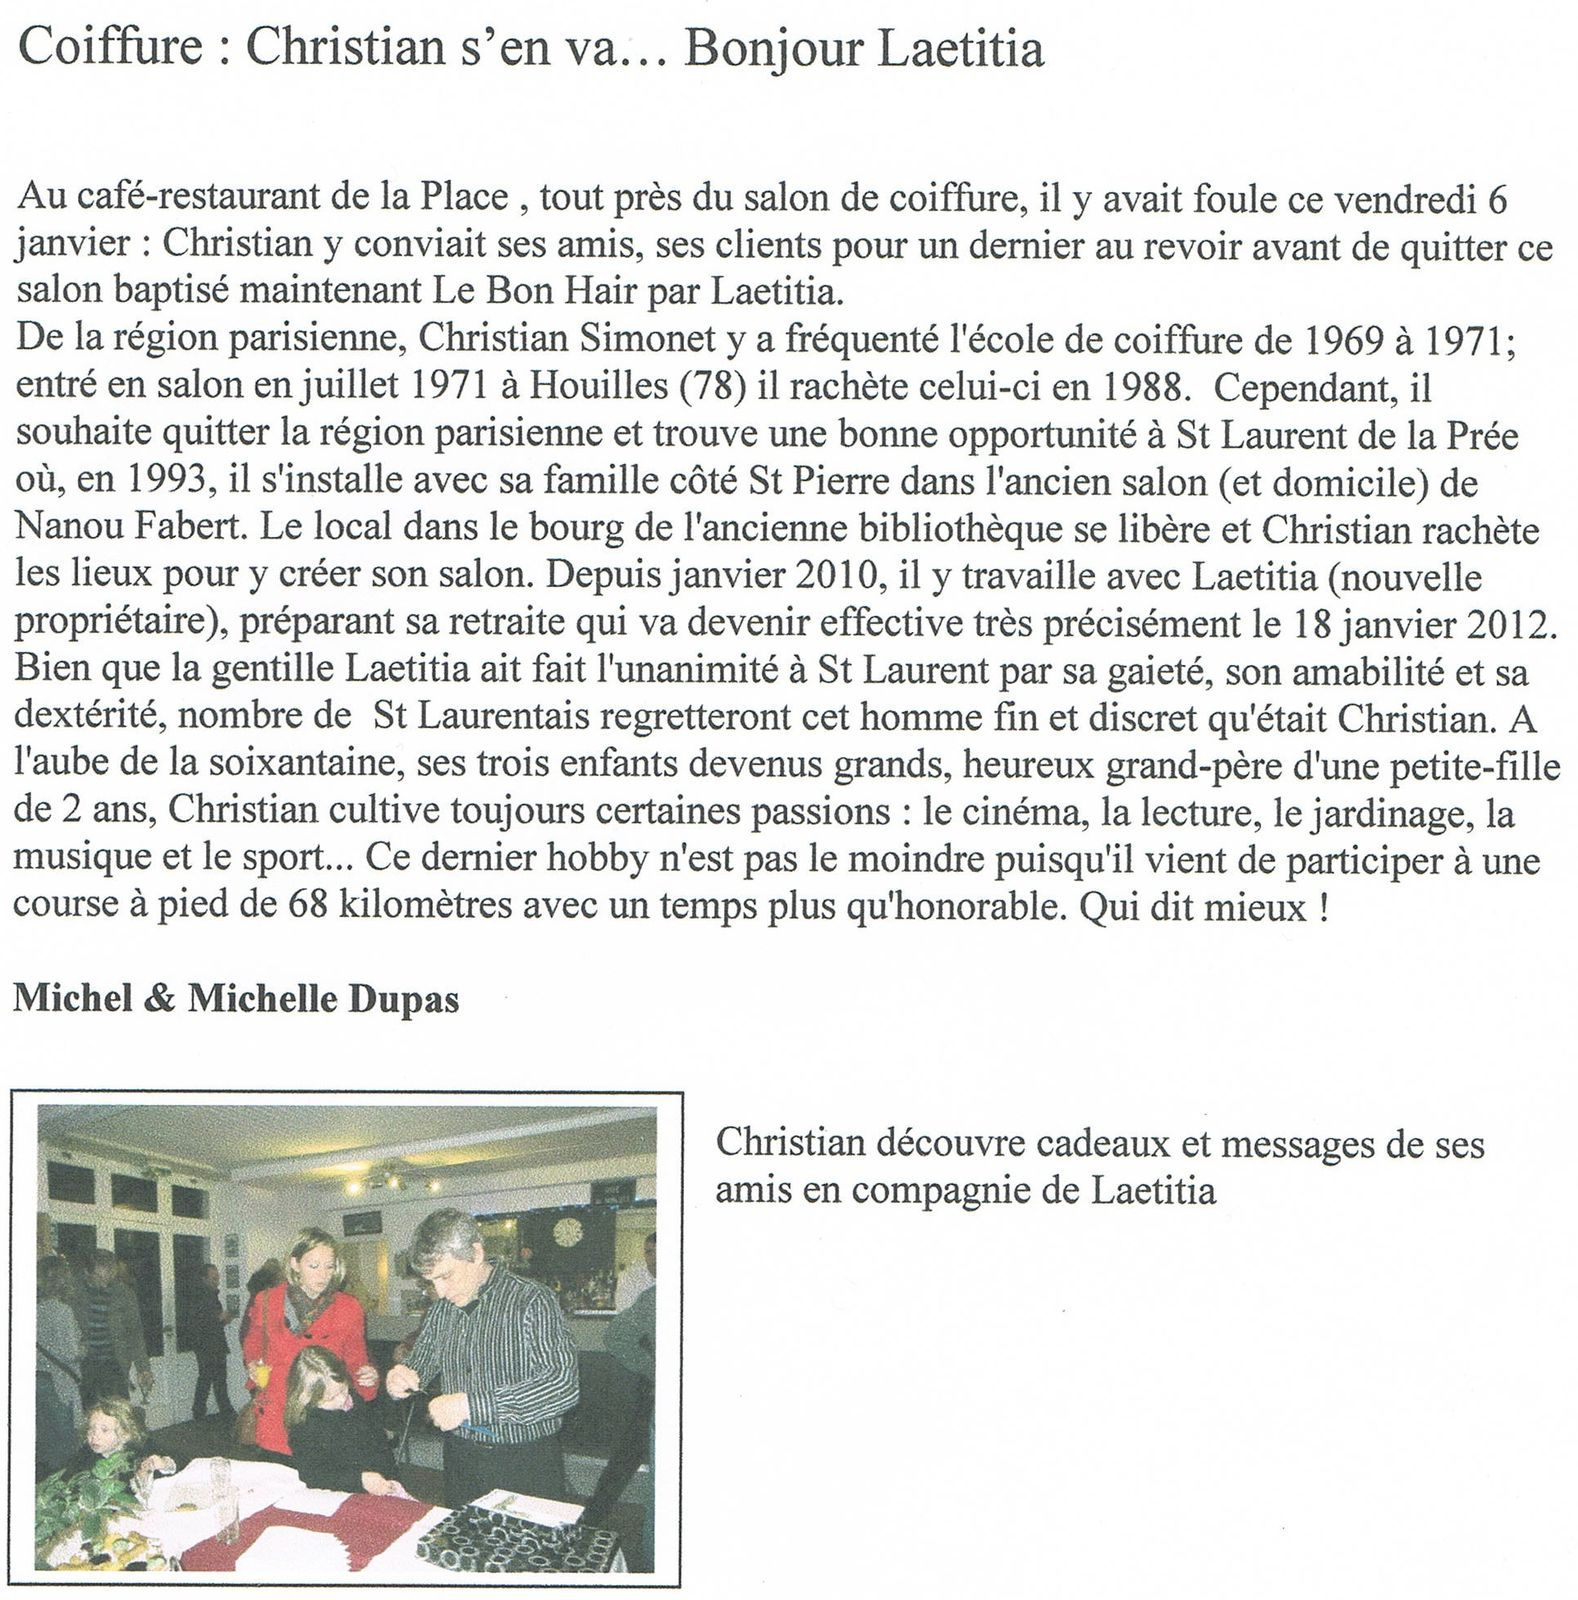 Christian-coiffeur.-Projet-d-article-remis-a-S.O.jpg